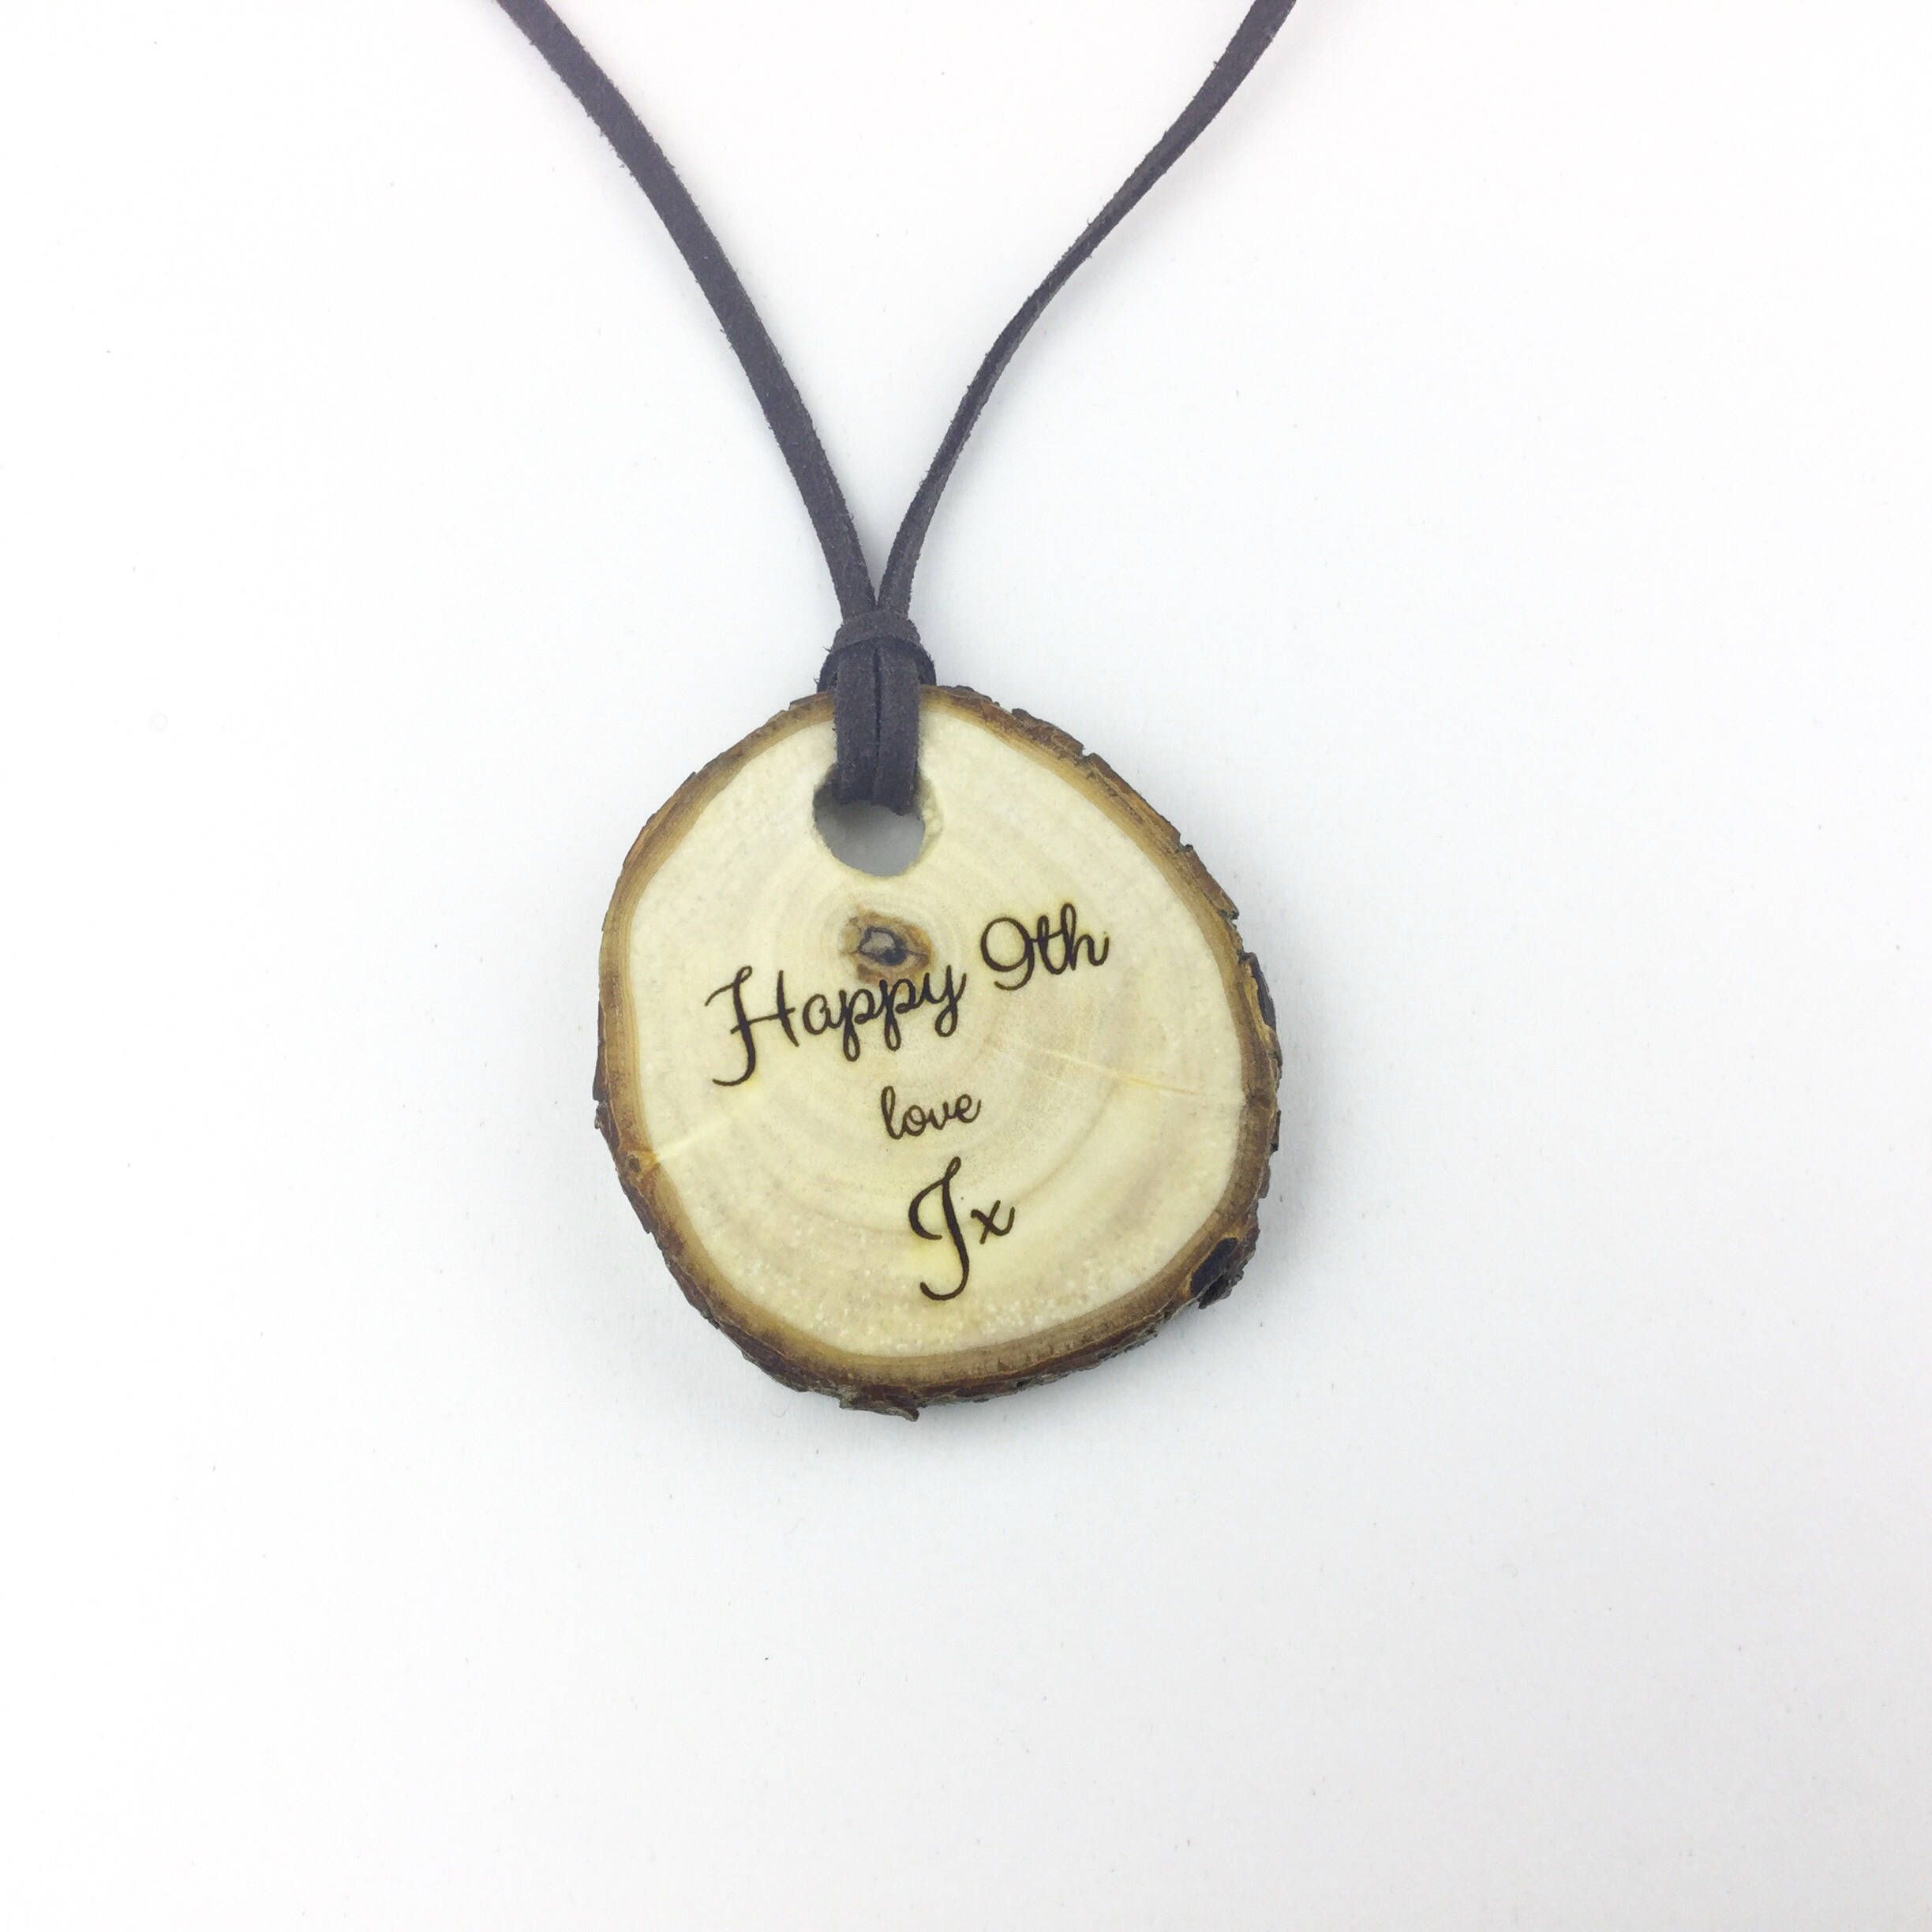 Excited to share the latest addition to my etsy shop